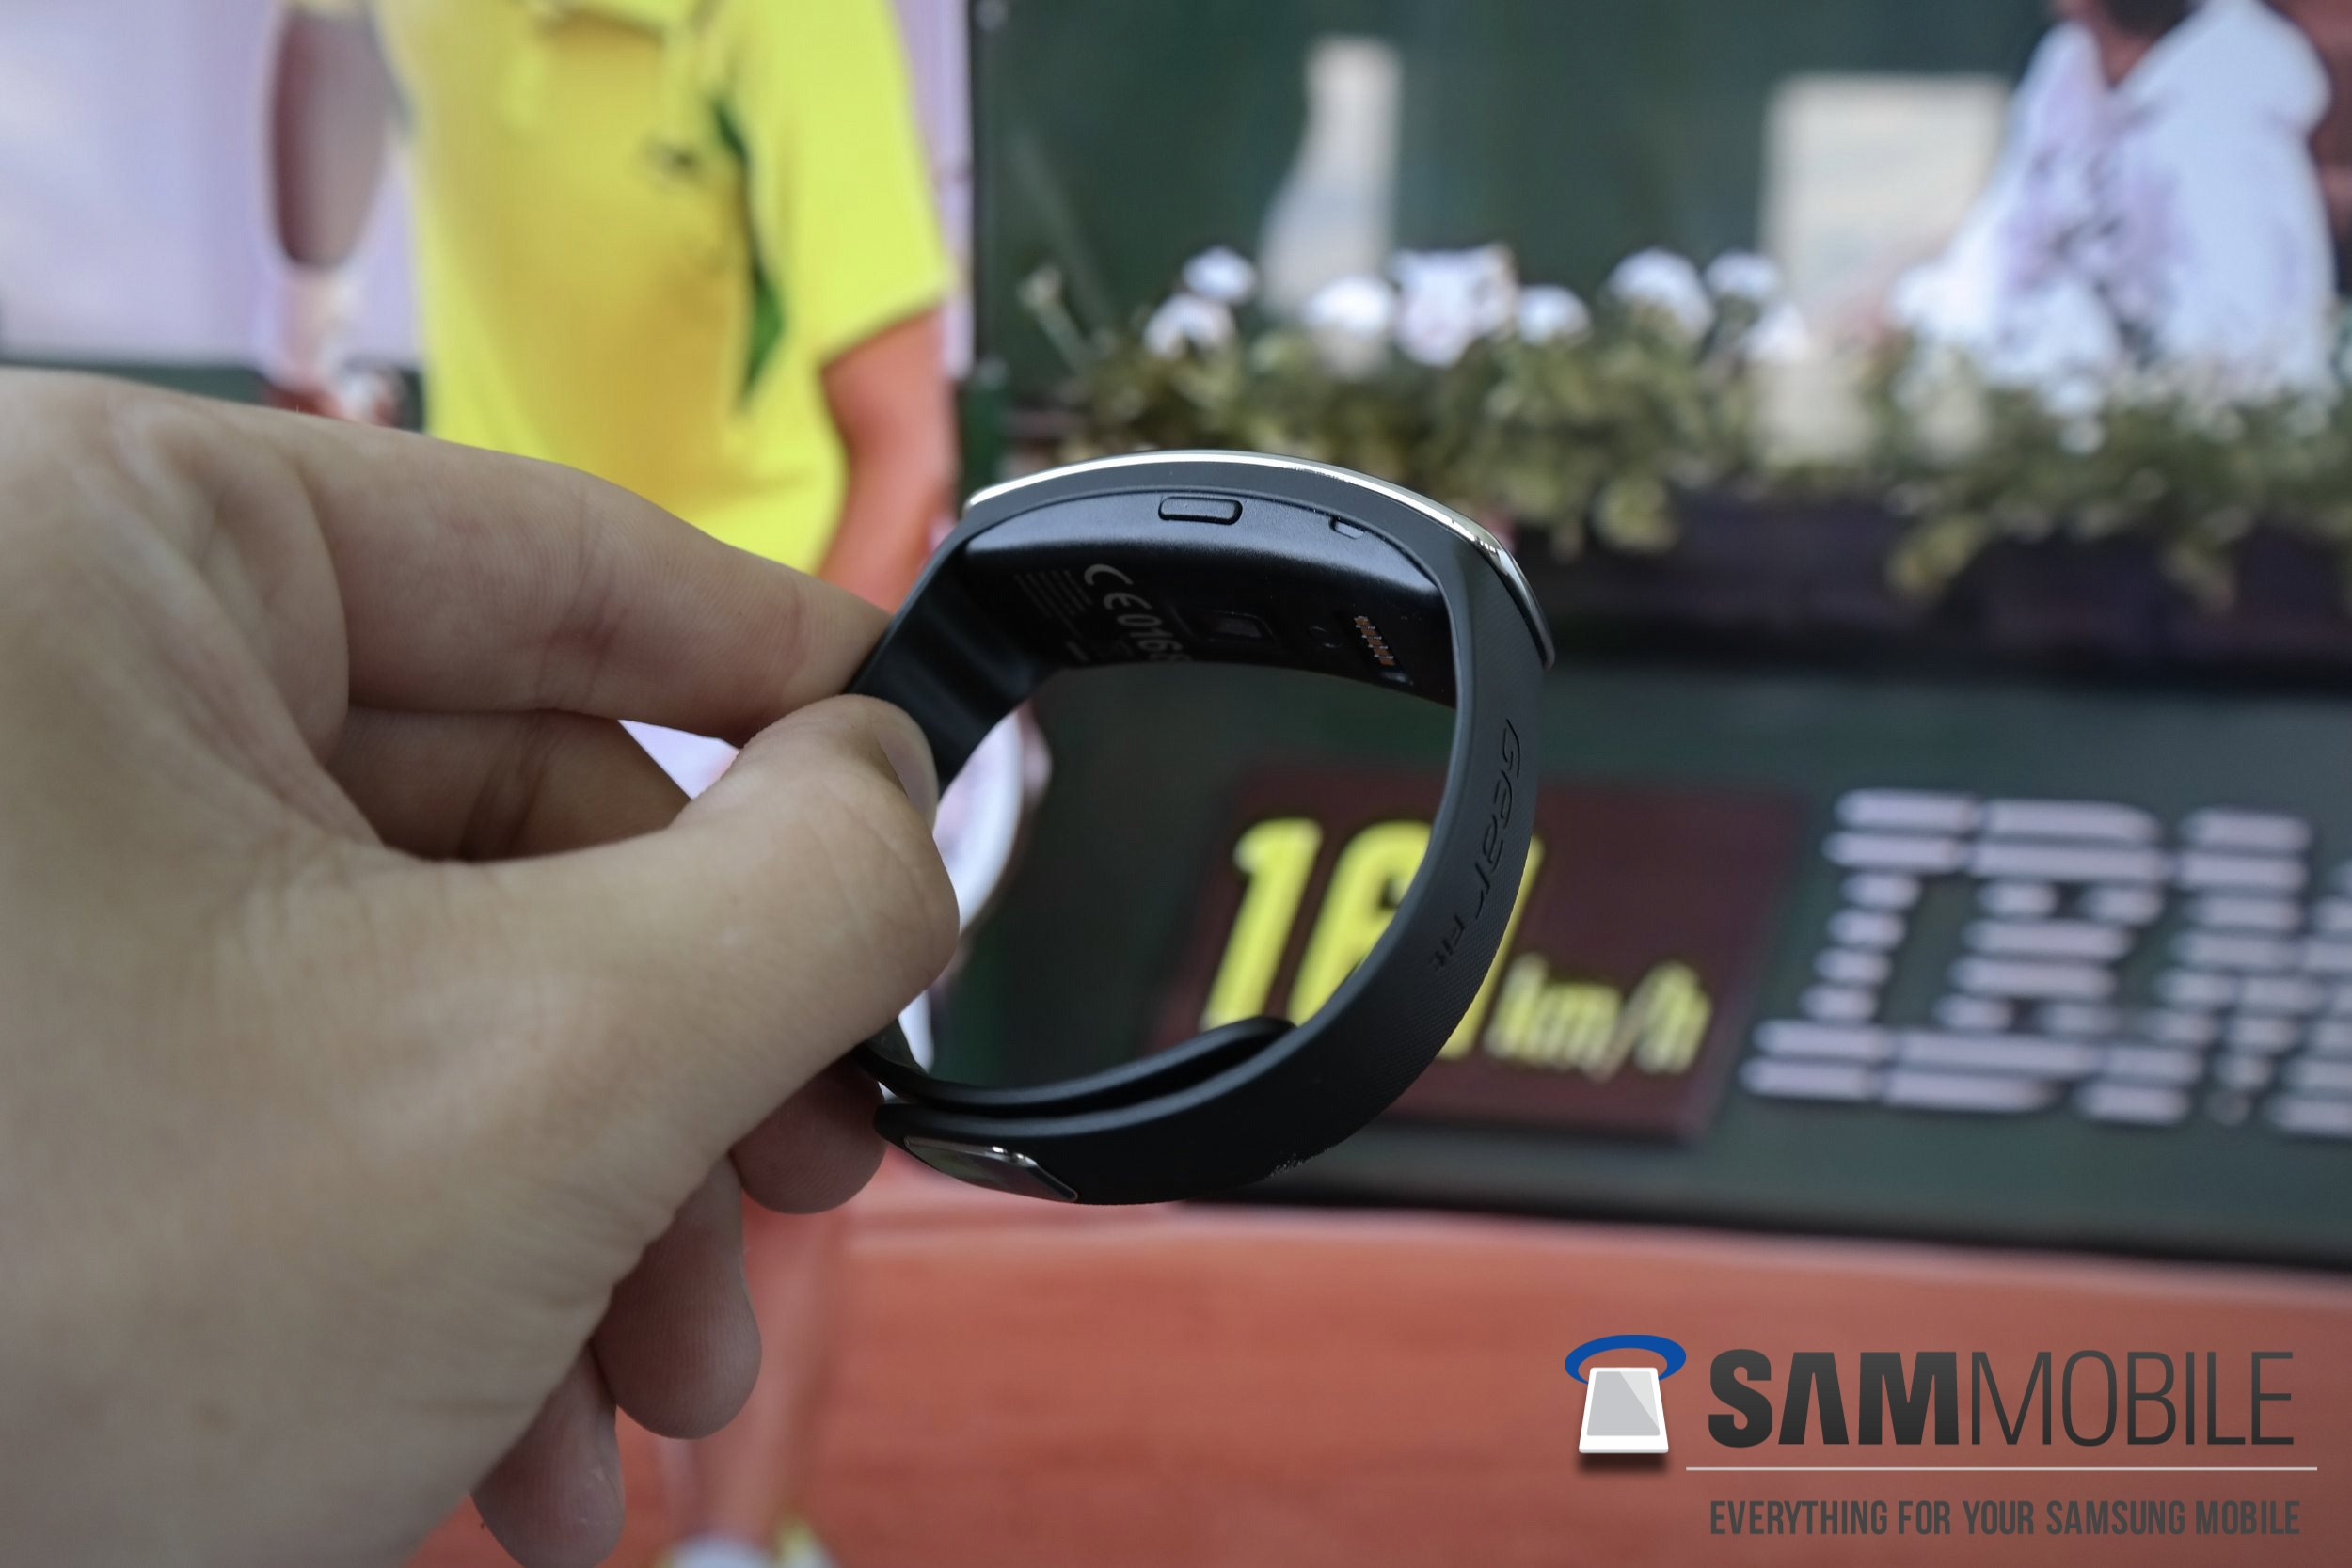 Samsung Gear Fit Is Beautiful Inside And Out Review: Gear Fit Review: Beautiful Design, Awful Fitness